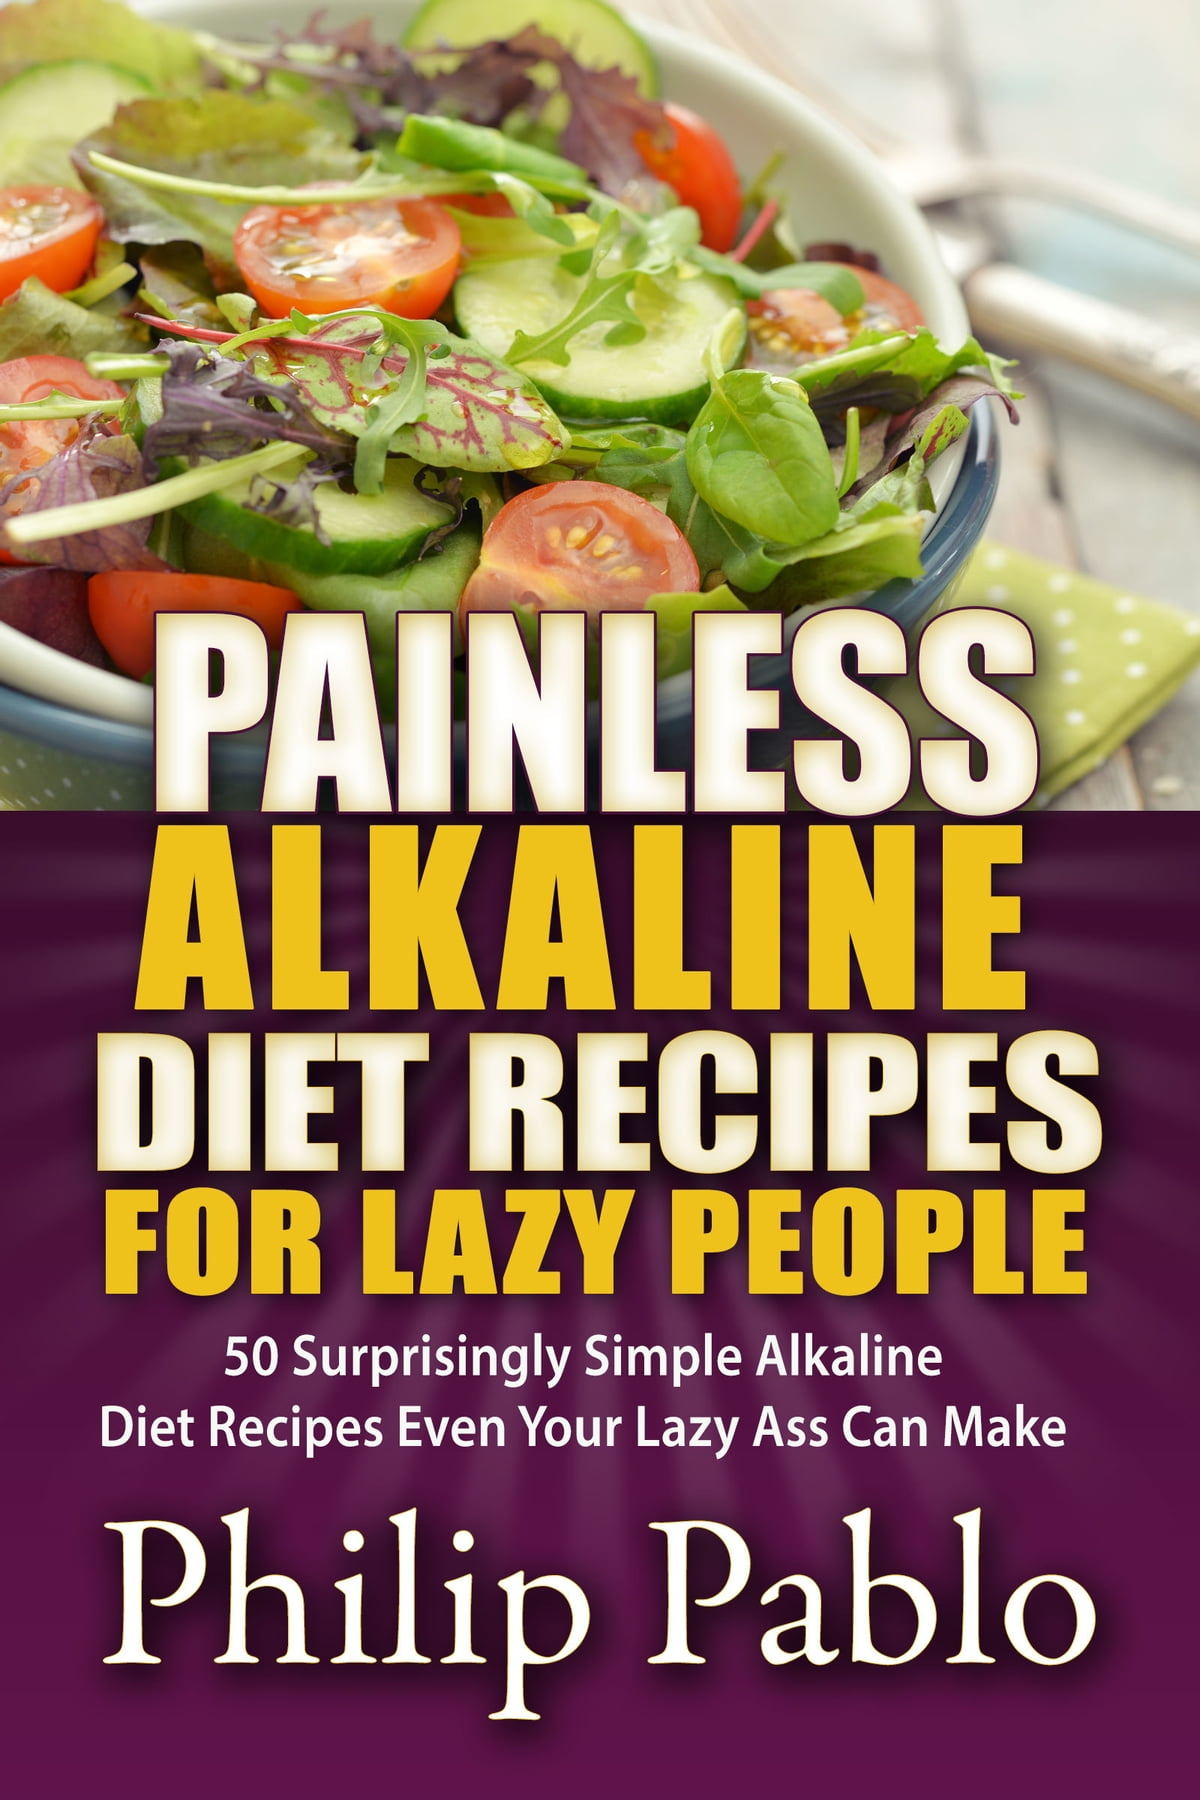 Painless alkaline diet recipes for lazy people 50 surprisingly painless alkaline diet recipes for lazy people 50 surprisingly simple alkaline diet recipes even your lazy ass can make ebook by phillip pablo forumfinder Gallery